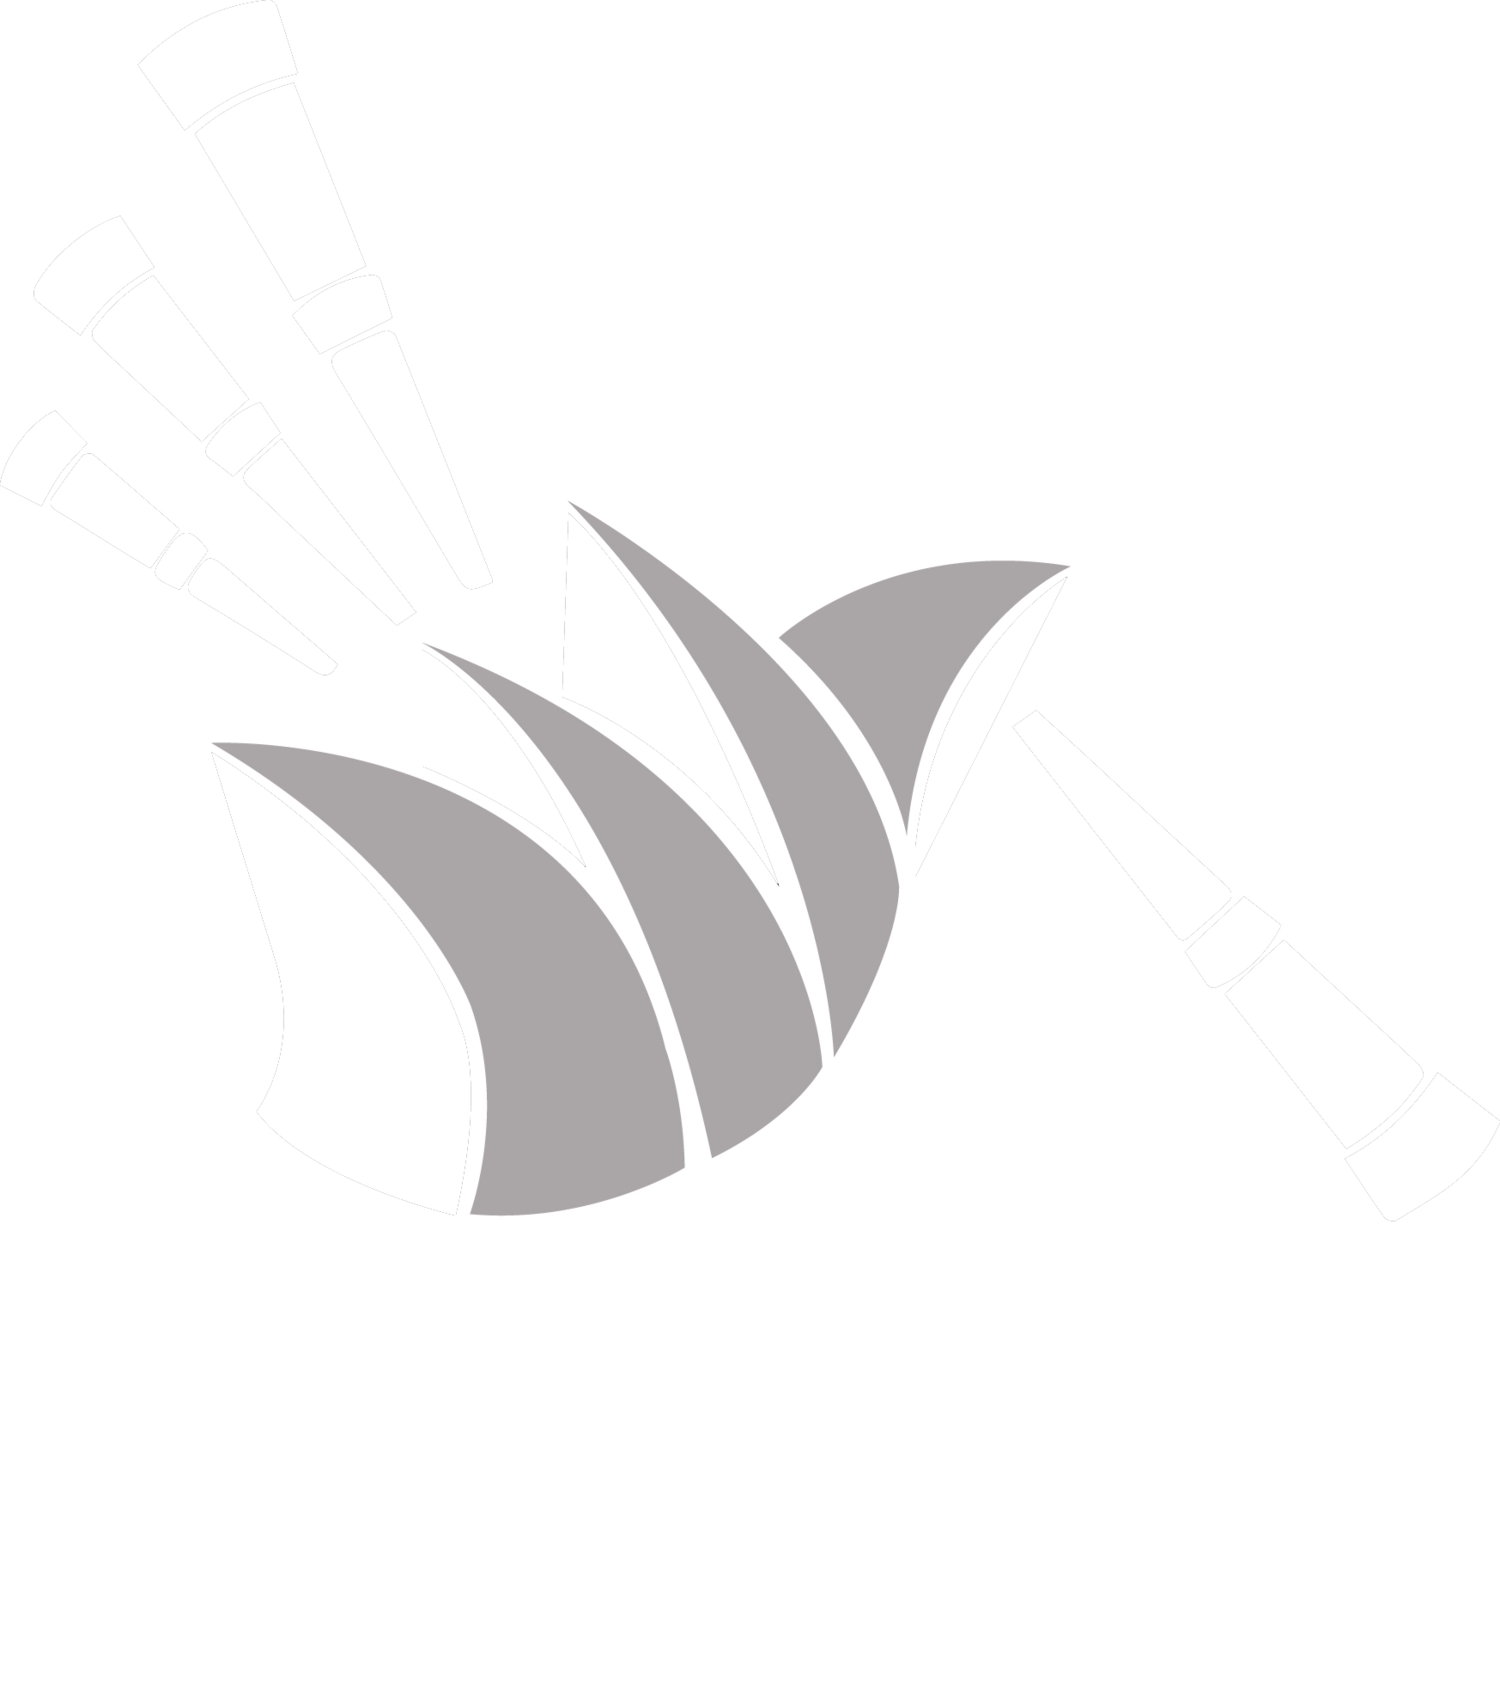 Sydney School of Piping & Drumming